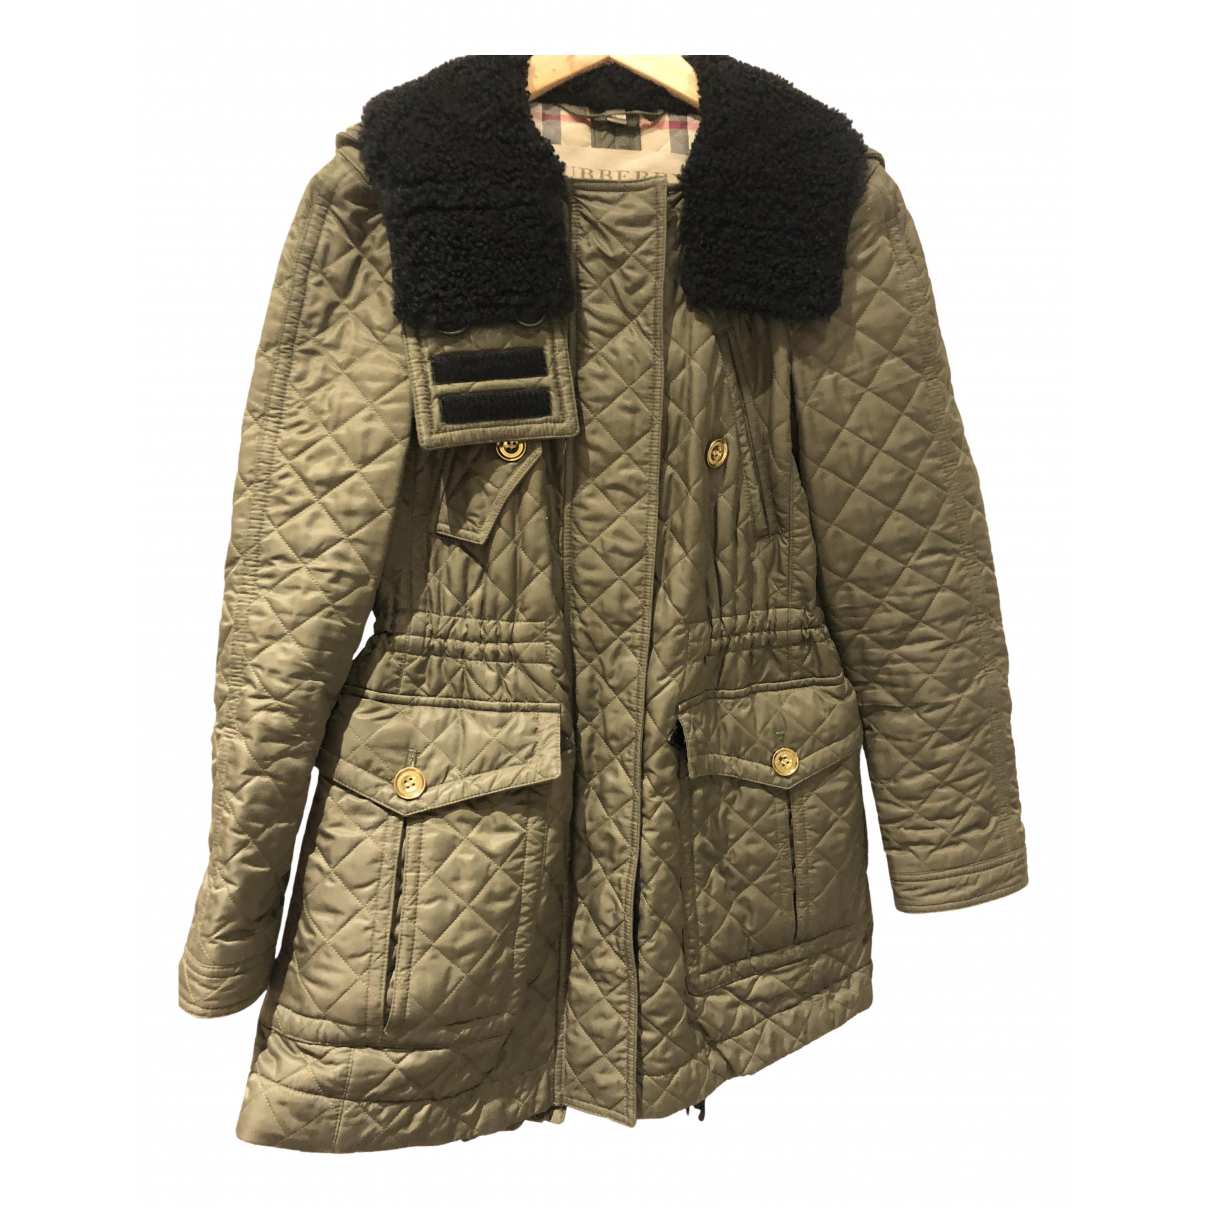 Burberry \N Jacke in  Khaki Synthetik